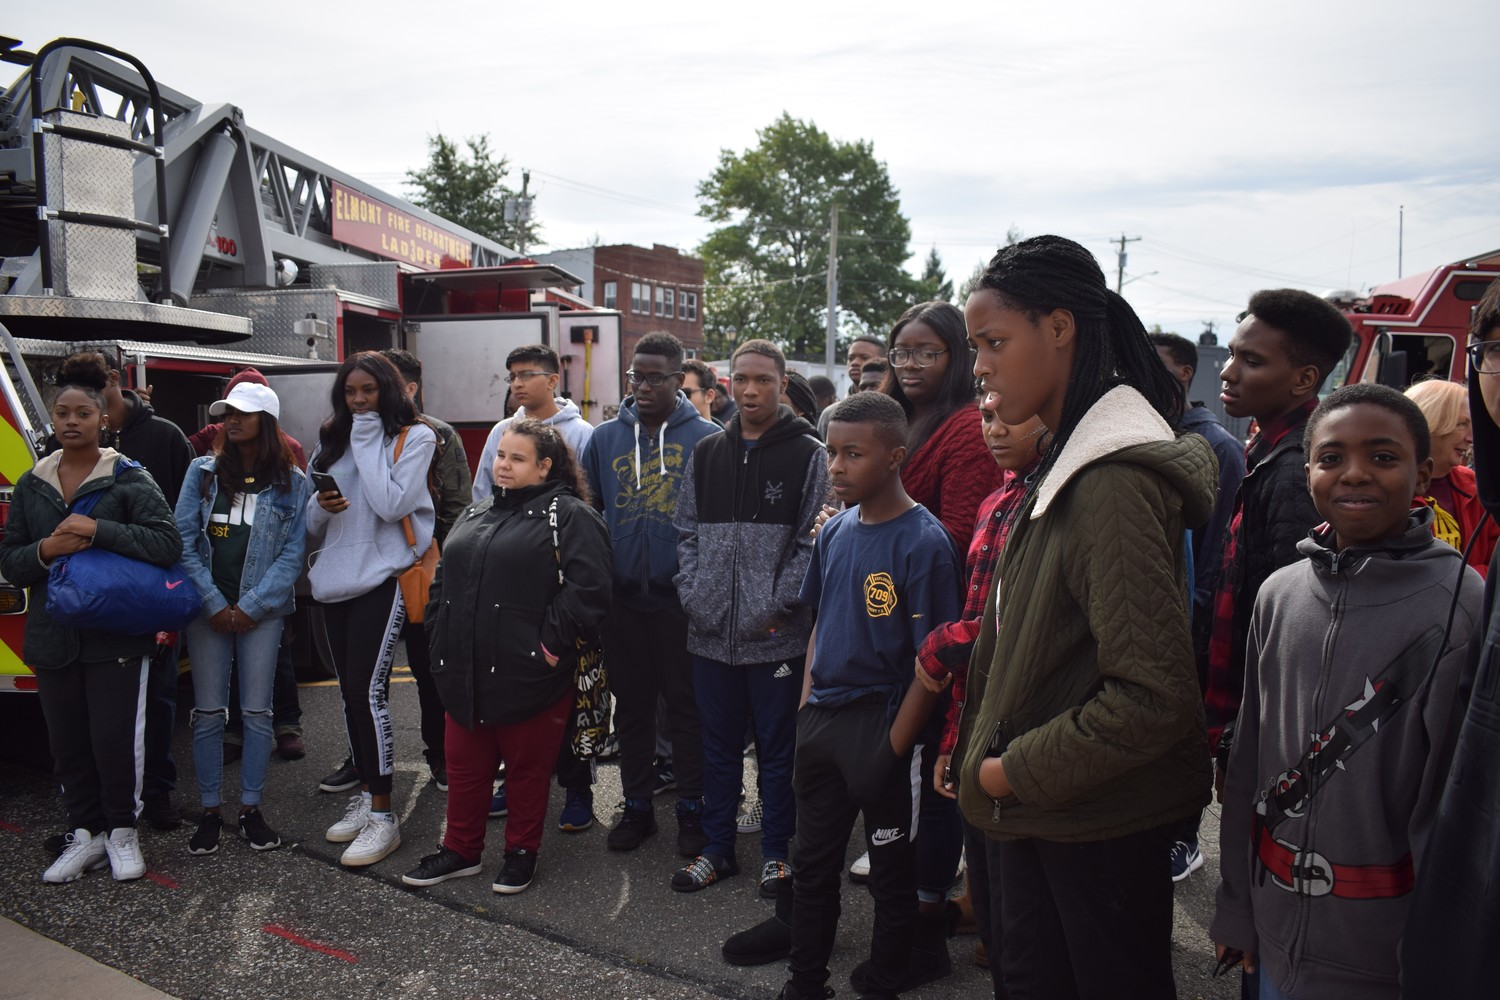 More than 40students from Elmont Memorial and Sewanhaka high schools gathered on School Road to learn about the Elmont Fire Department during a recruitment open house on Oct. 14.